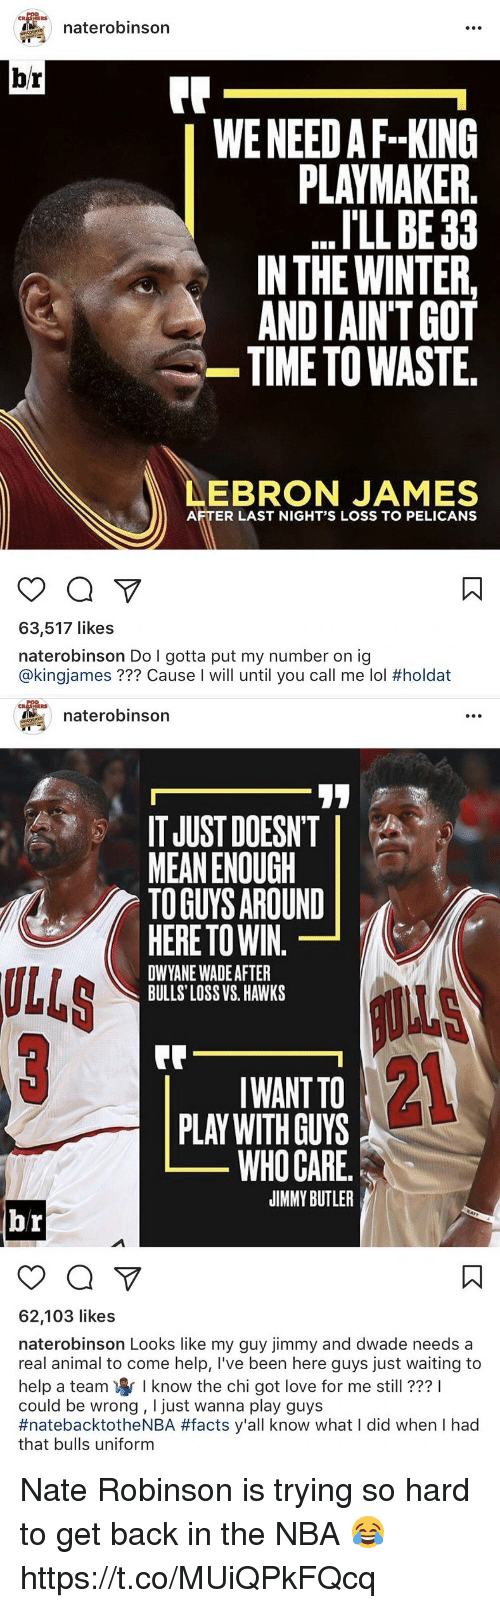 Nate Robinson: HERS  naterobinson  br  Fr  WE NEED AF.-KING  PLAYMAKER  . 'LL BE 33  IN THE WINTER,  ANDIAIN'TGOT  TIME TO WASTE.  EBRON JAMES  AFTER LAST NIGHT'S LOSS TO PELICANS  63,517 likes  naterobinson Do I gotta put my number on ig  @k.ngjames ??? Cause l will until you call me lol #holdat   ERS  naterobinson  IT JUST DOESN'T  MEAN ENOUGH  TO GUYS AROUND  ULLS  HERE TO WIN.  DWYANE WADE AFTER  BULLS LOSS VS. HAWKS  21  IWANT TO  PLAY WITH GUYS  WHO CARE  JIMMY BUTLER  62,103 likes  naterobinson Looks like my guy jimmy and dwade needs a  real animal to come help, I've been here guys just waiting to  help a team寧 know the chi got love for me still ???!  could be wrong, I just wanna play guys  #natebacktotheNBA #facts y'all know what I did when I had  that bulls uniform Nate Robinson is trying so hard to get back in the NBA 😂 https://t.co/MUiQPkFQcq